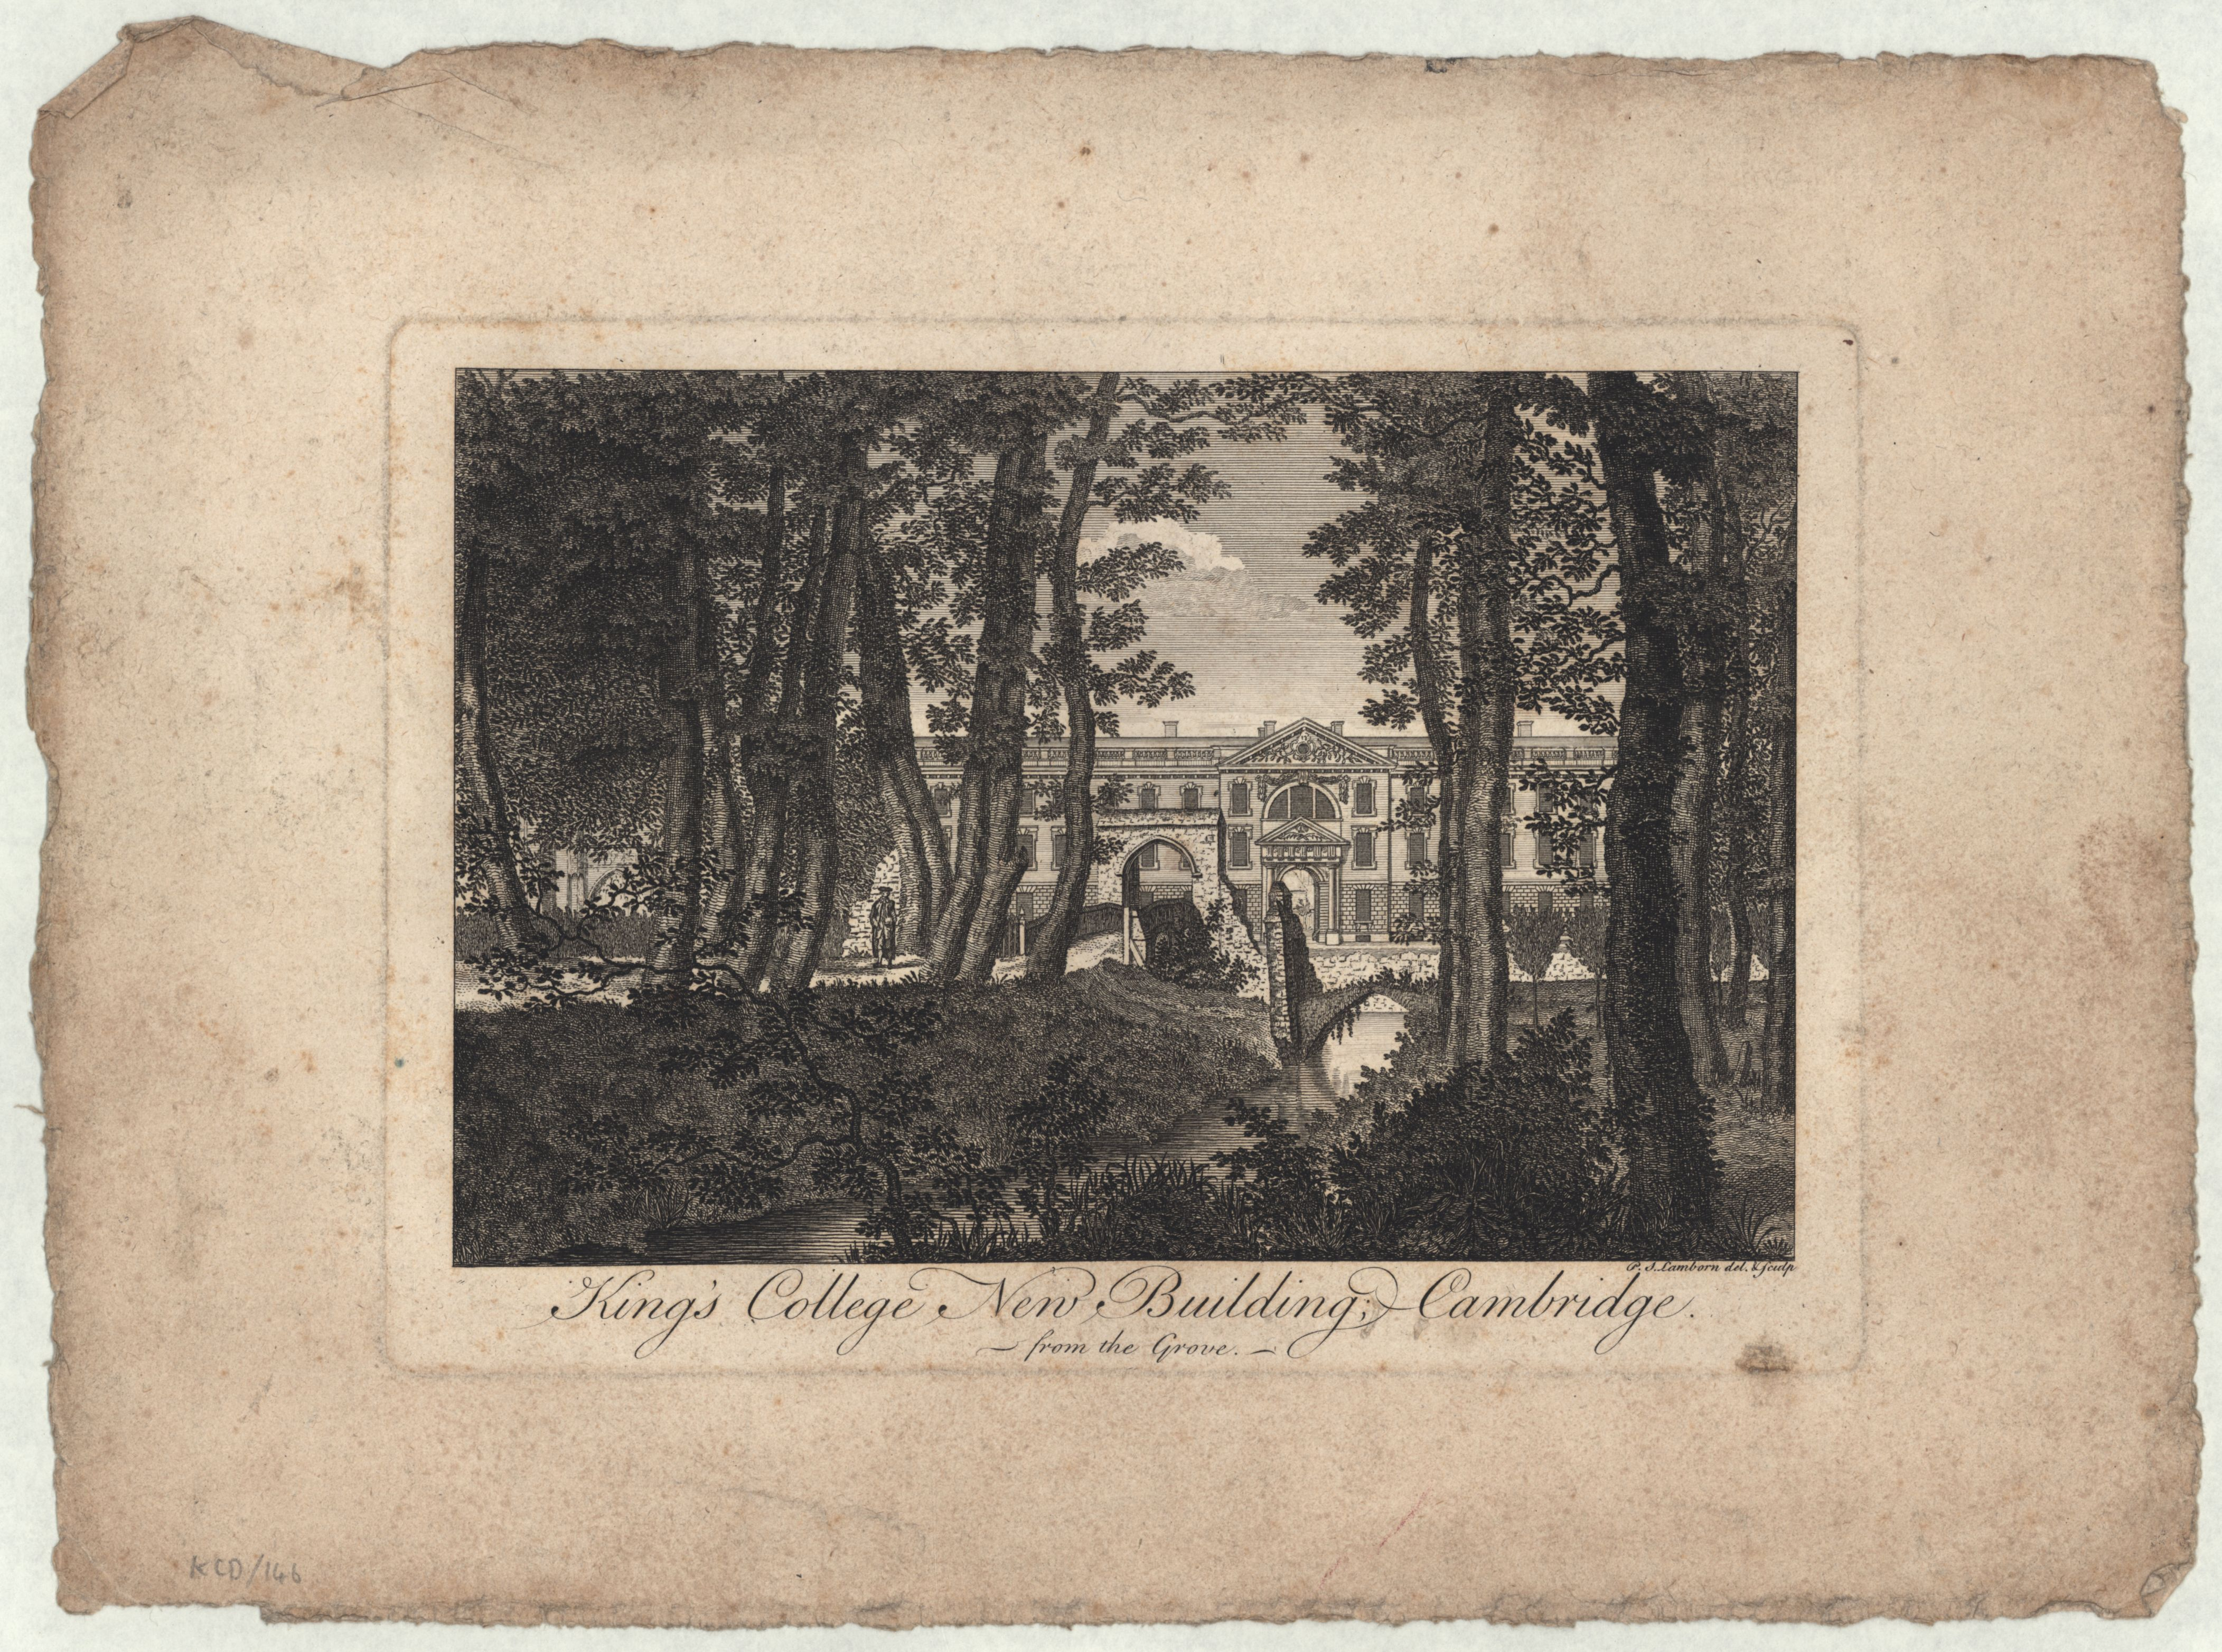 'King's College New Building Cambridge, from the Grove', engraving by P.S. Lamborn, c.1790, showing the old bridge over the Cam. [KCD/146]